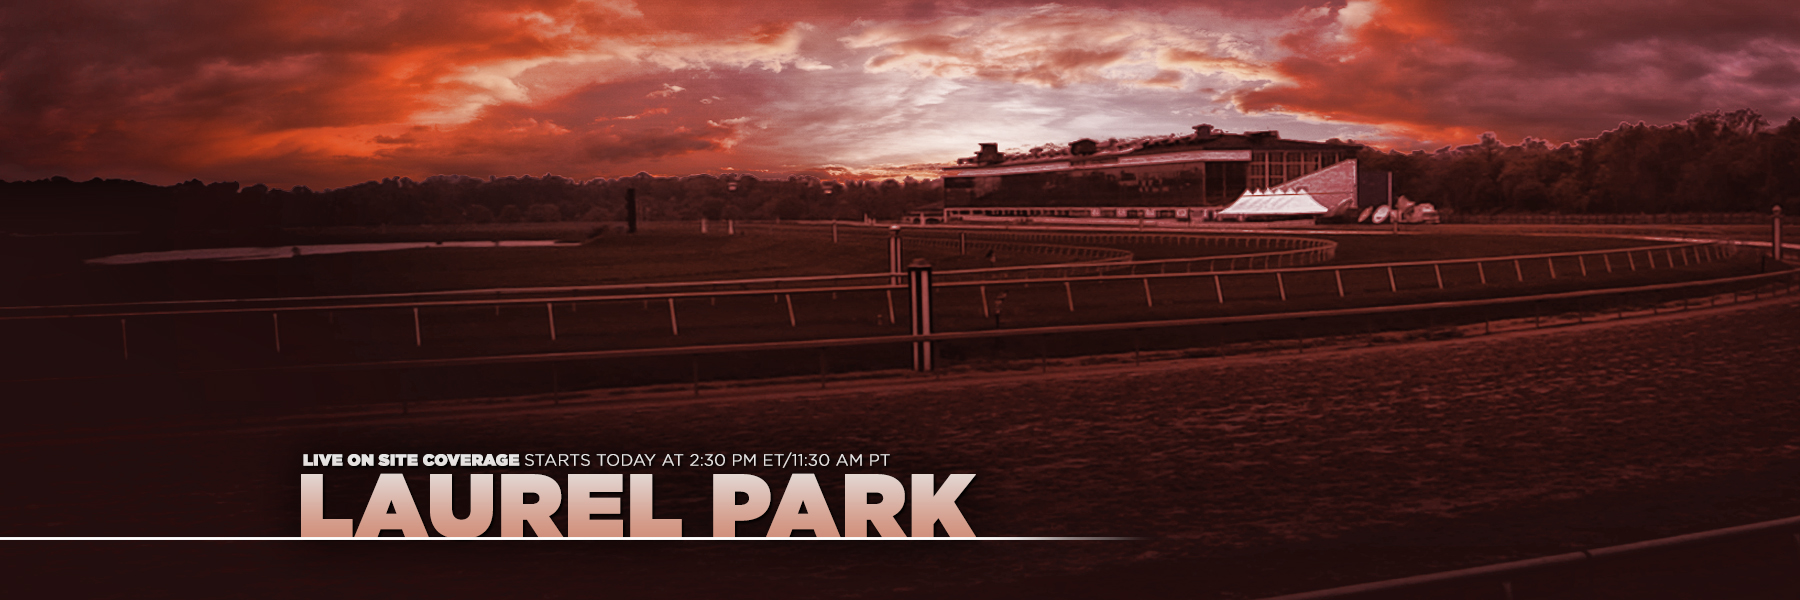 Jeff Siegel's Blog: Video Analysis of Five Stakes Races at Laurel Park for Sunday, July 14, 2019